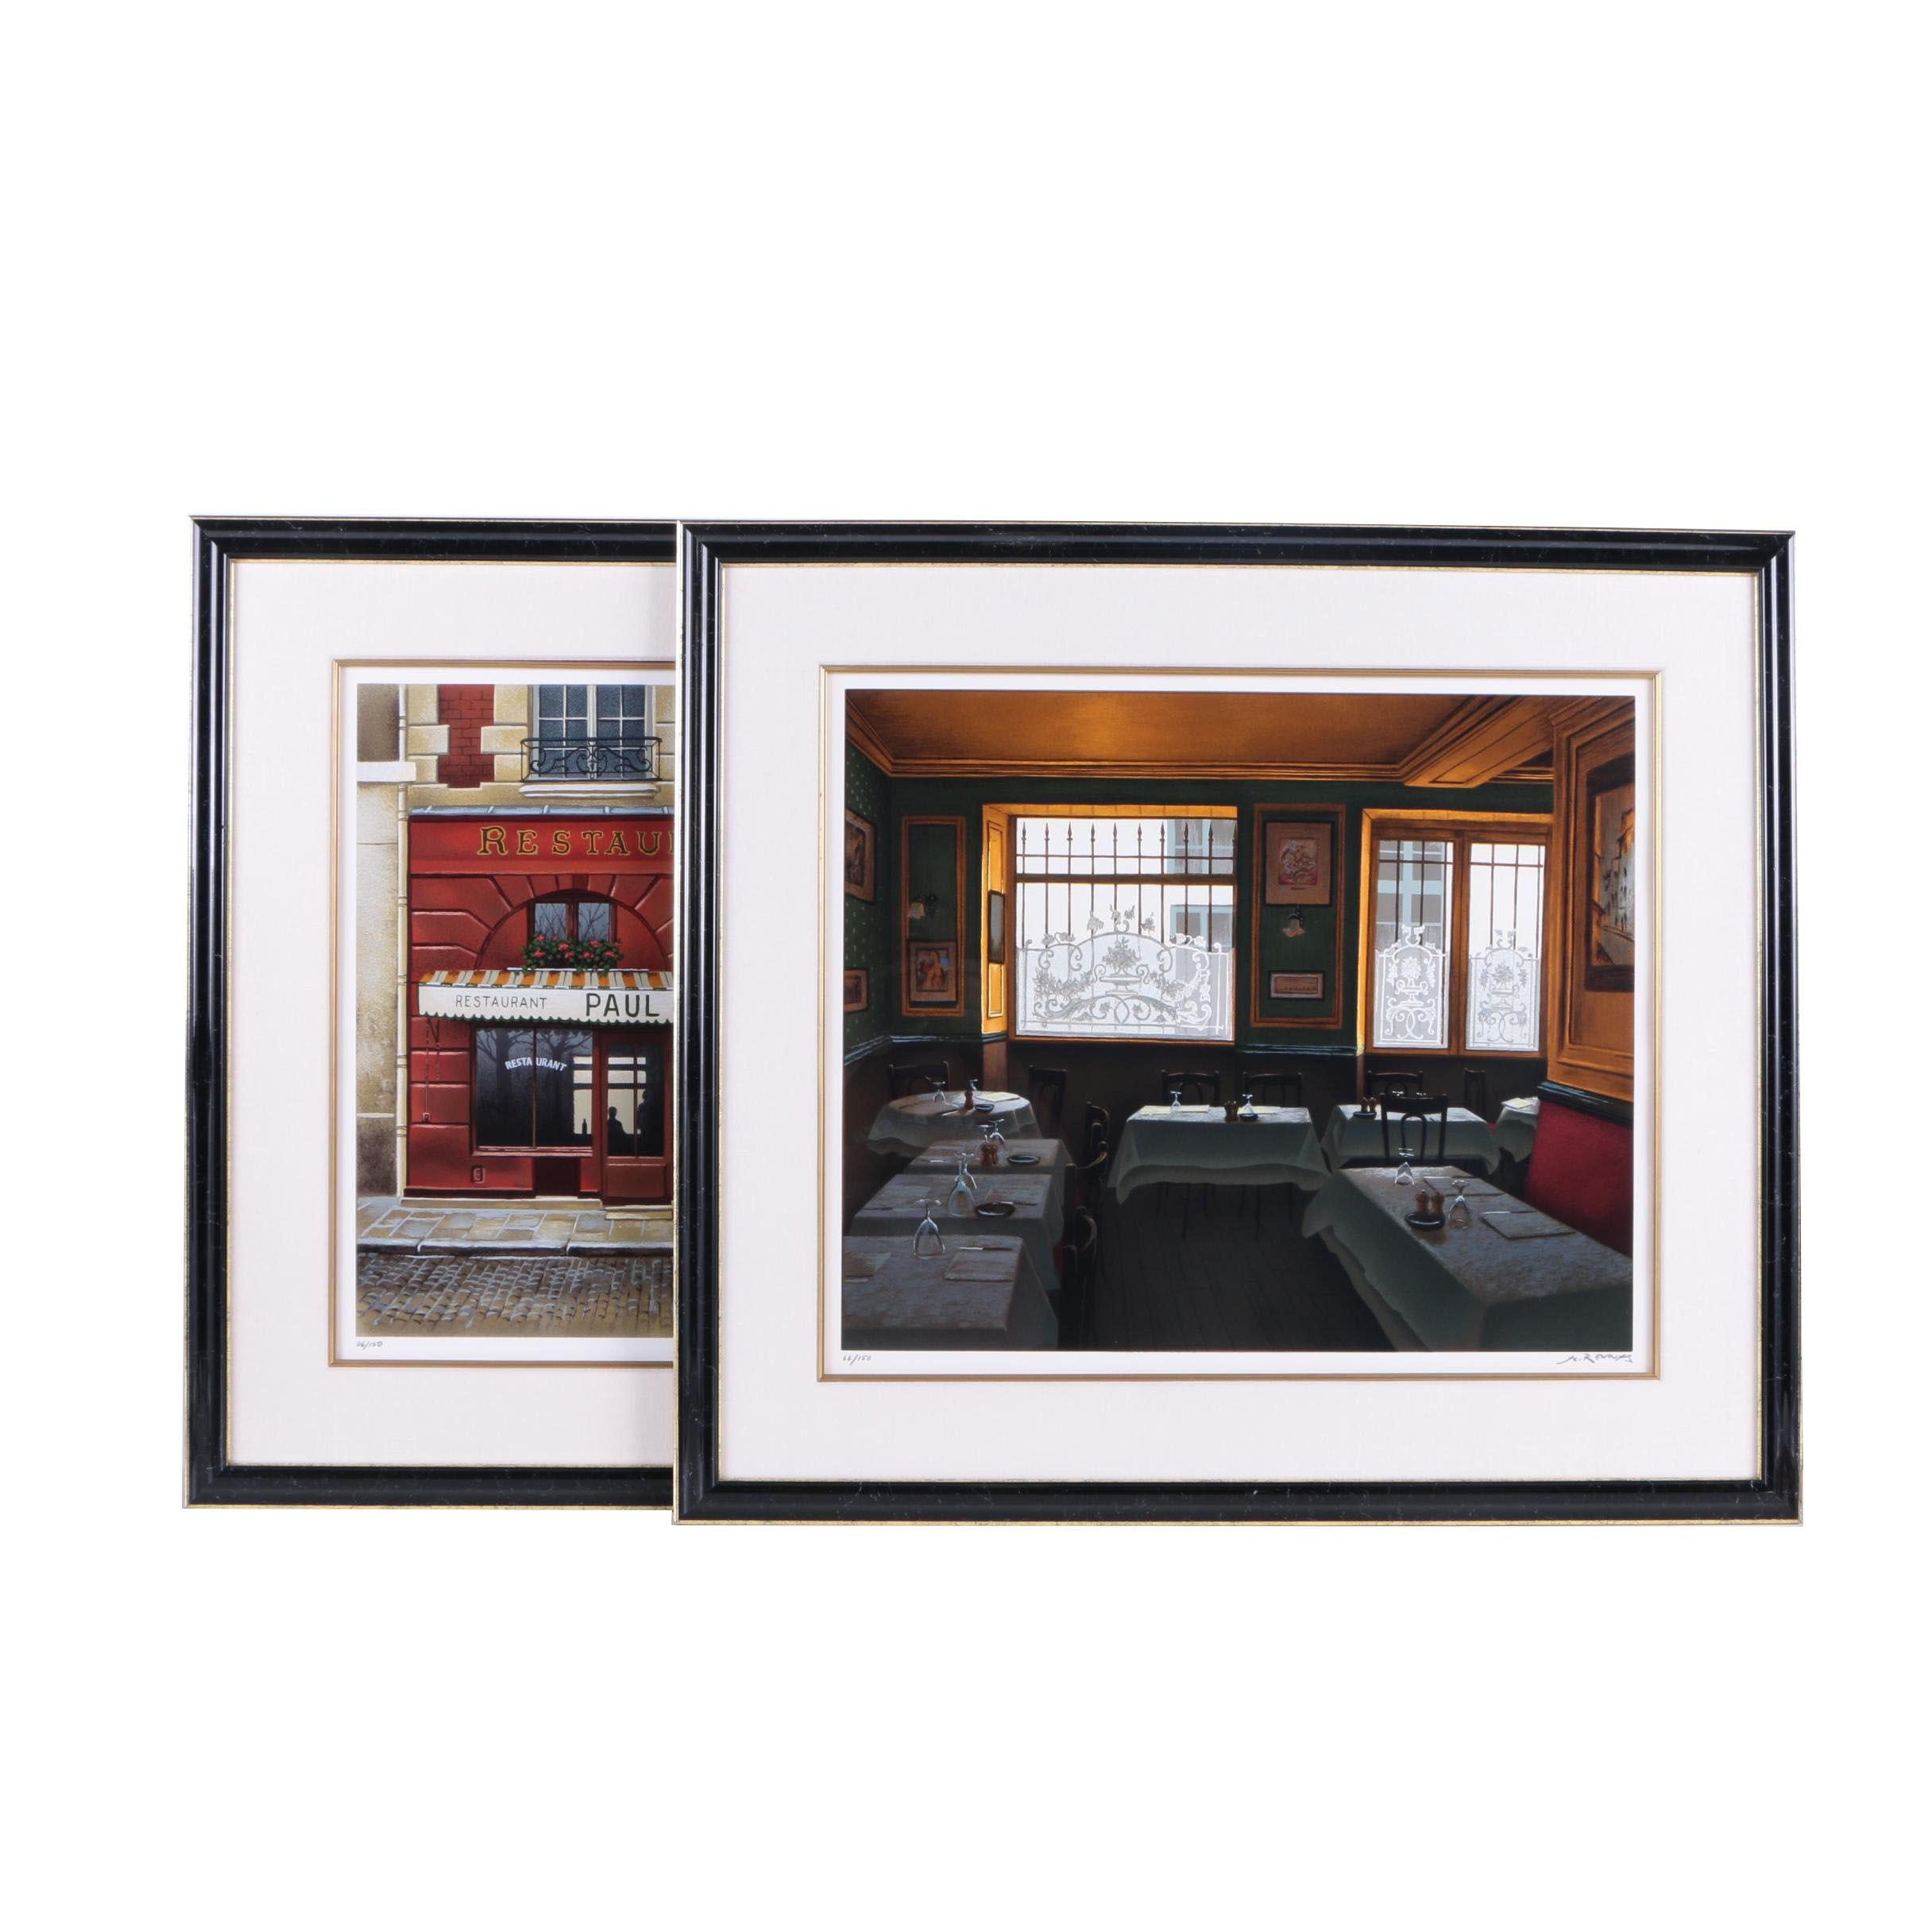 Andre Renoux Limited Edition Serigraph Prints of Restaurants